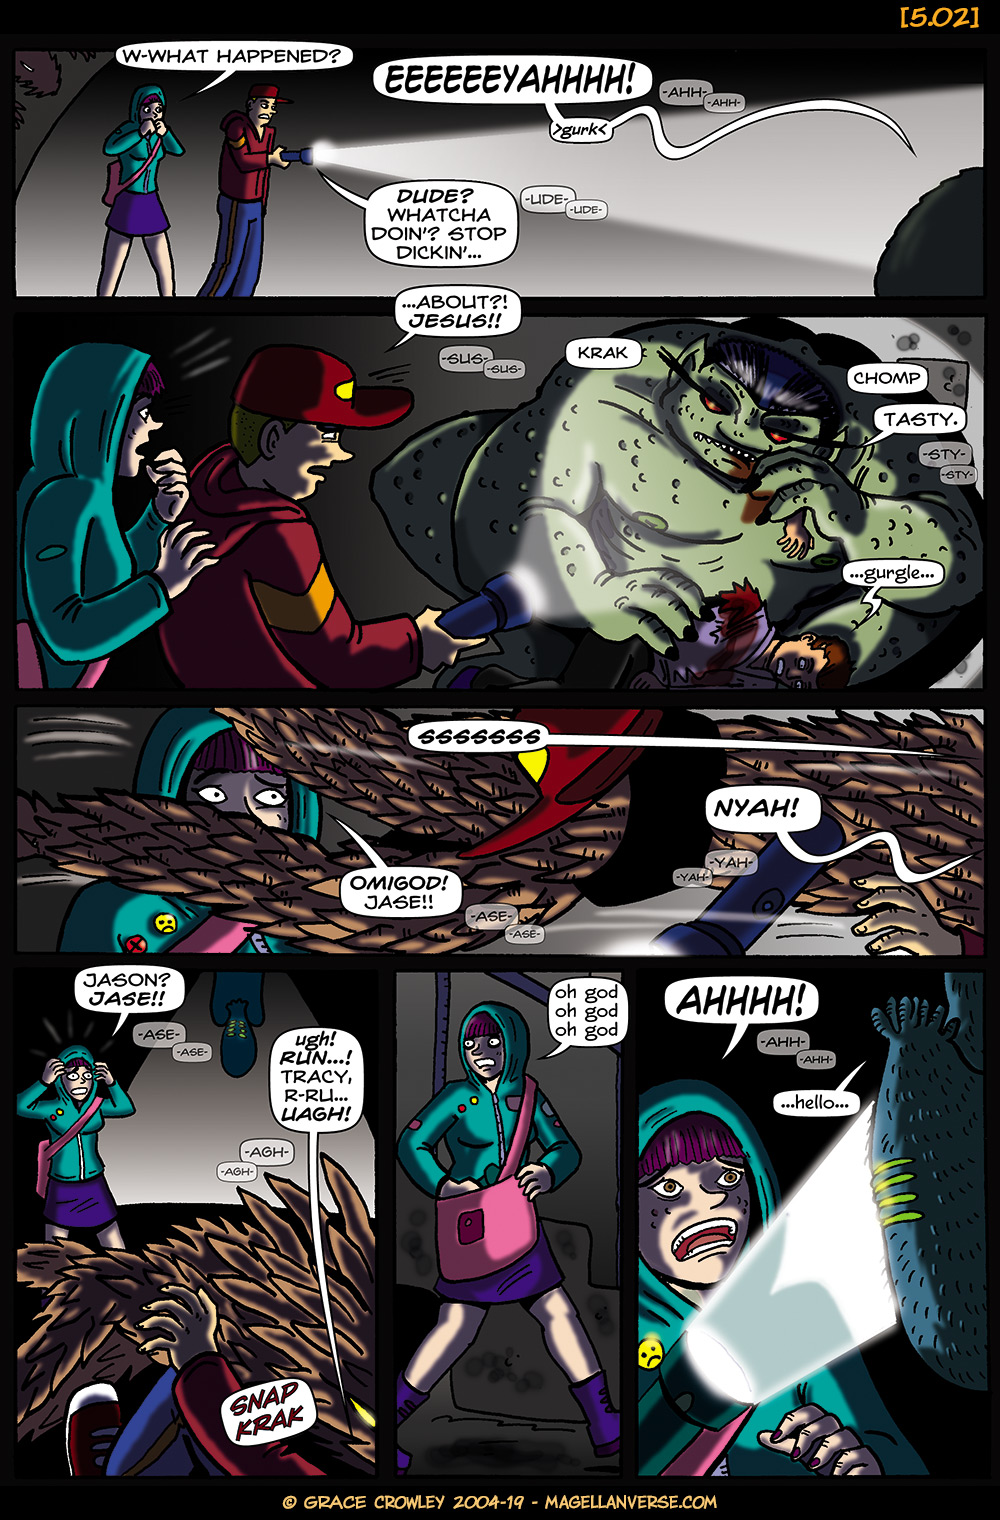 Page 5.02